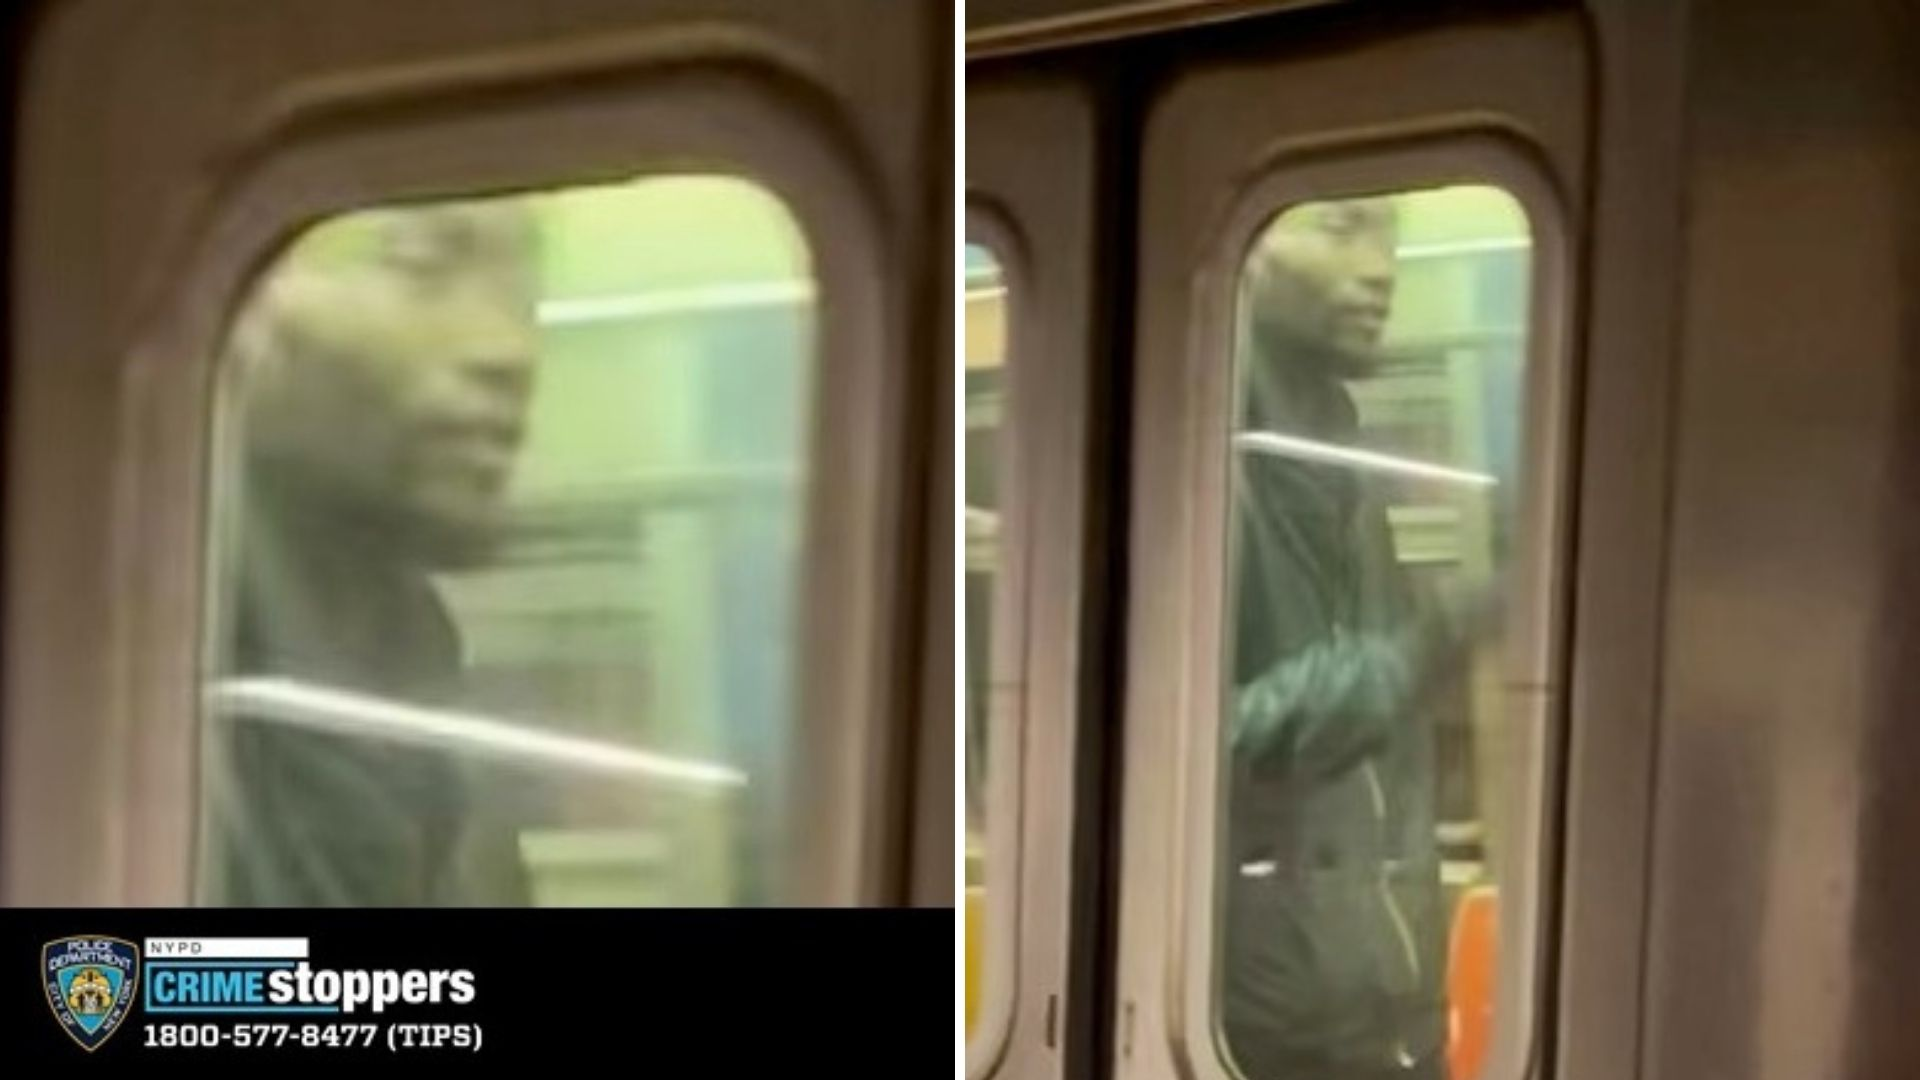 Asian hate crime suspect on subway